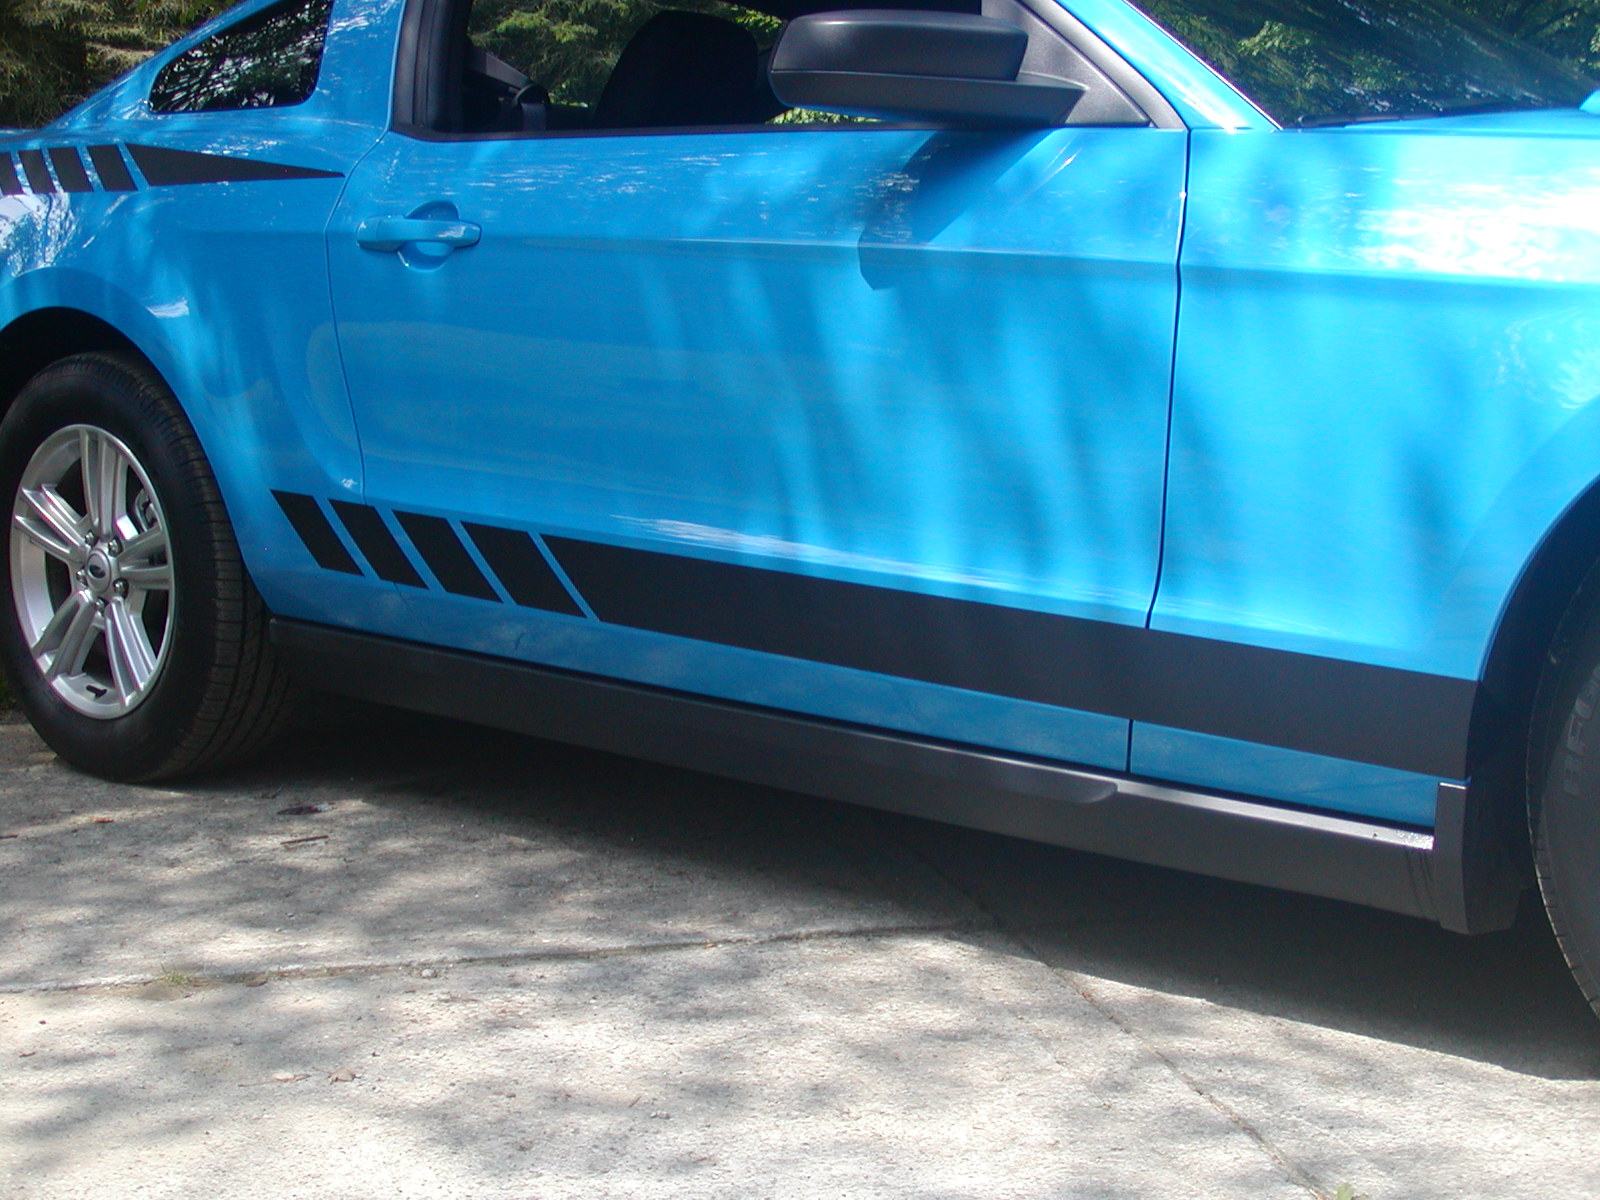 2010 - 2011 - 2012 Mustang Faded Rocker stripes #1